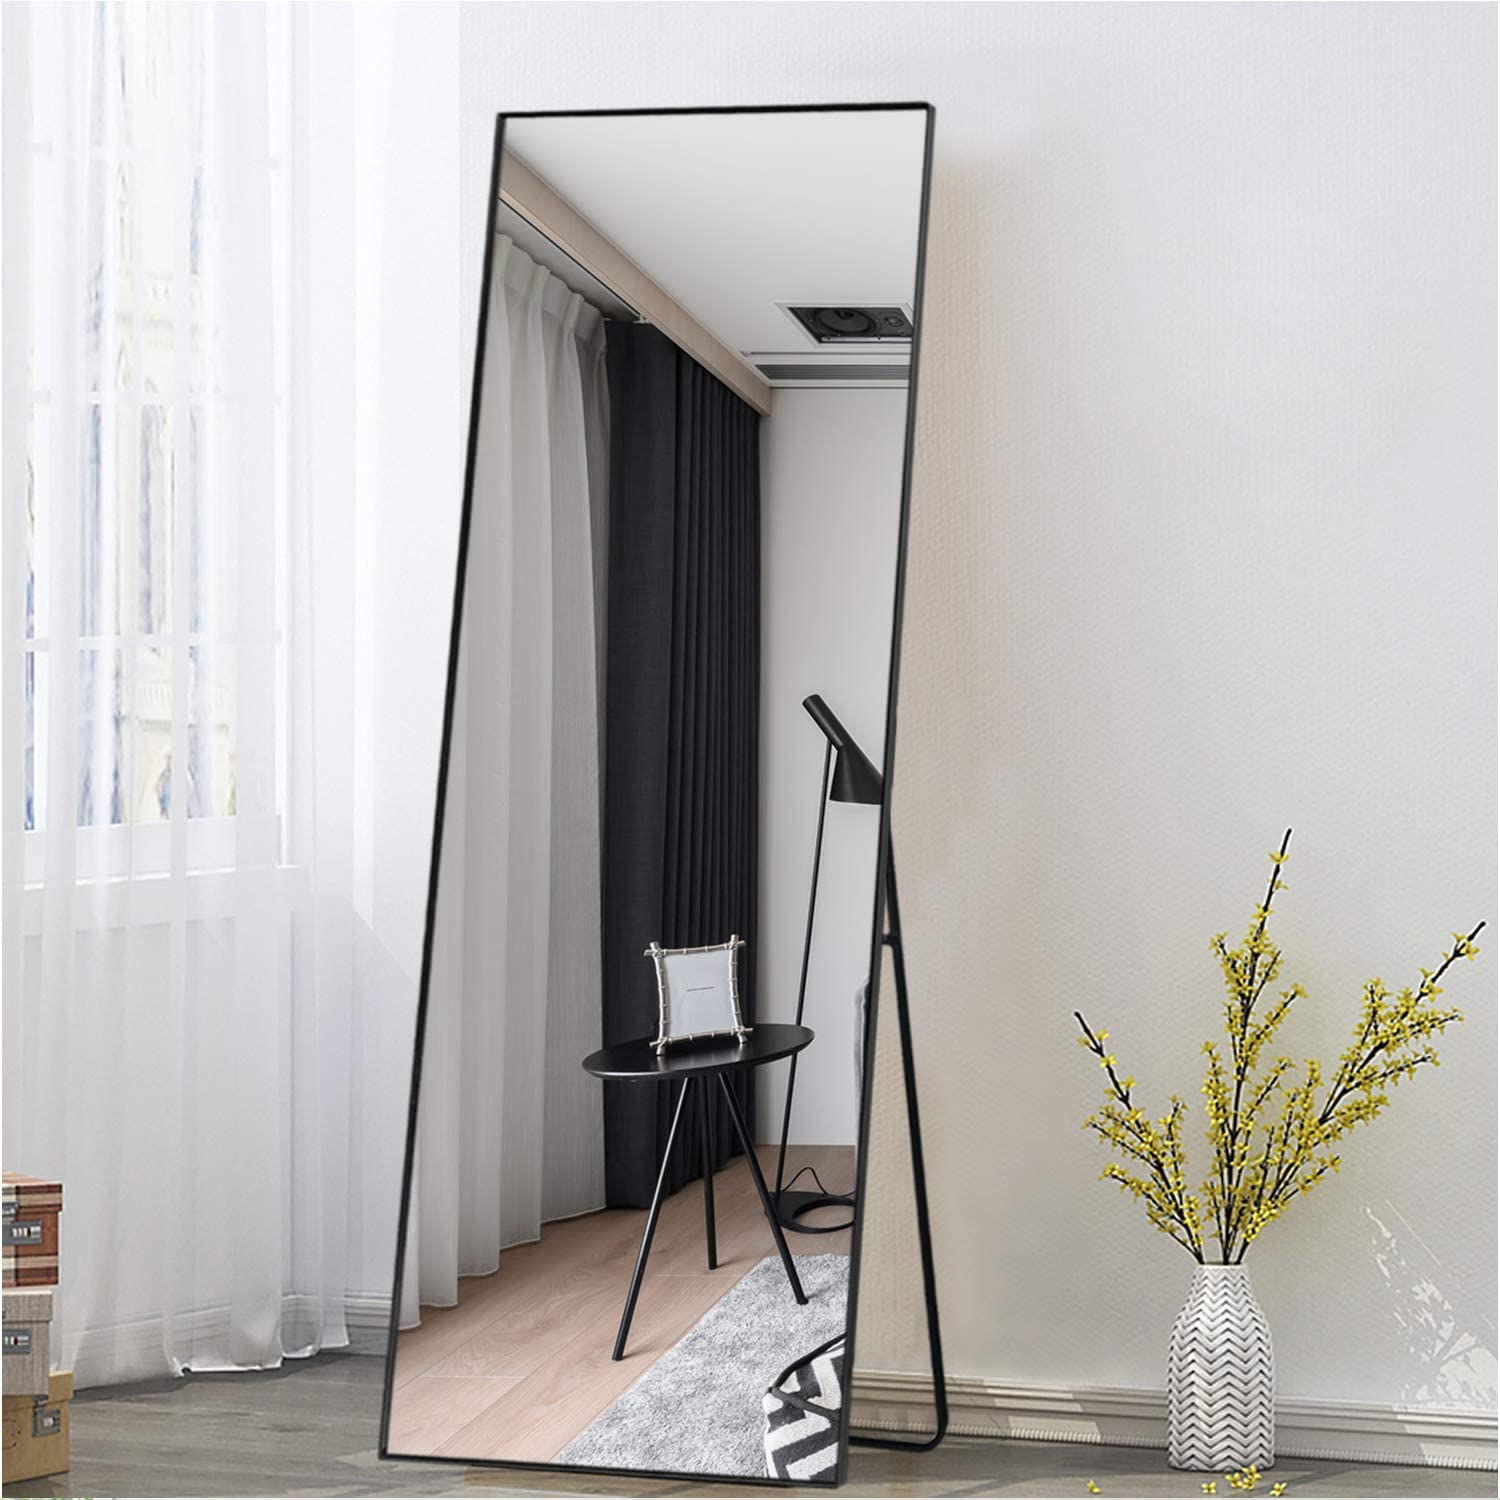 """ONXO Full Length Mirror Large Floor Mirror Standing Without Free Standing Bracket Wall-Mounted Mirror Dressing Mirror Frame Mirror for Living Room//Bedroom//Coating Room 52/""""X16/"""", Black"""